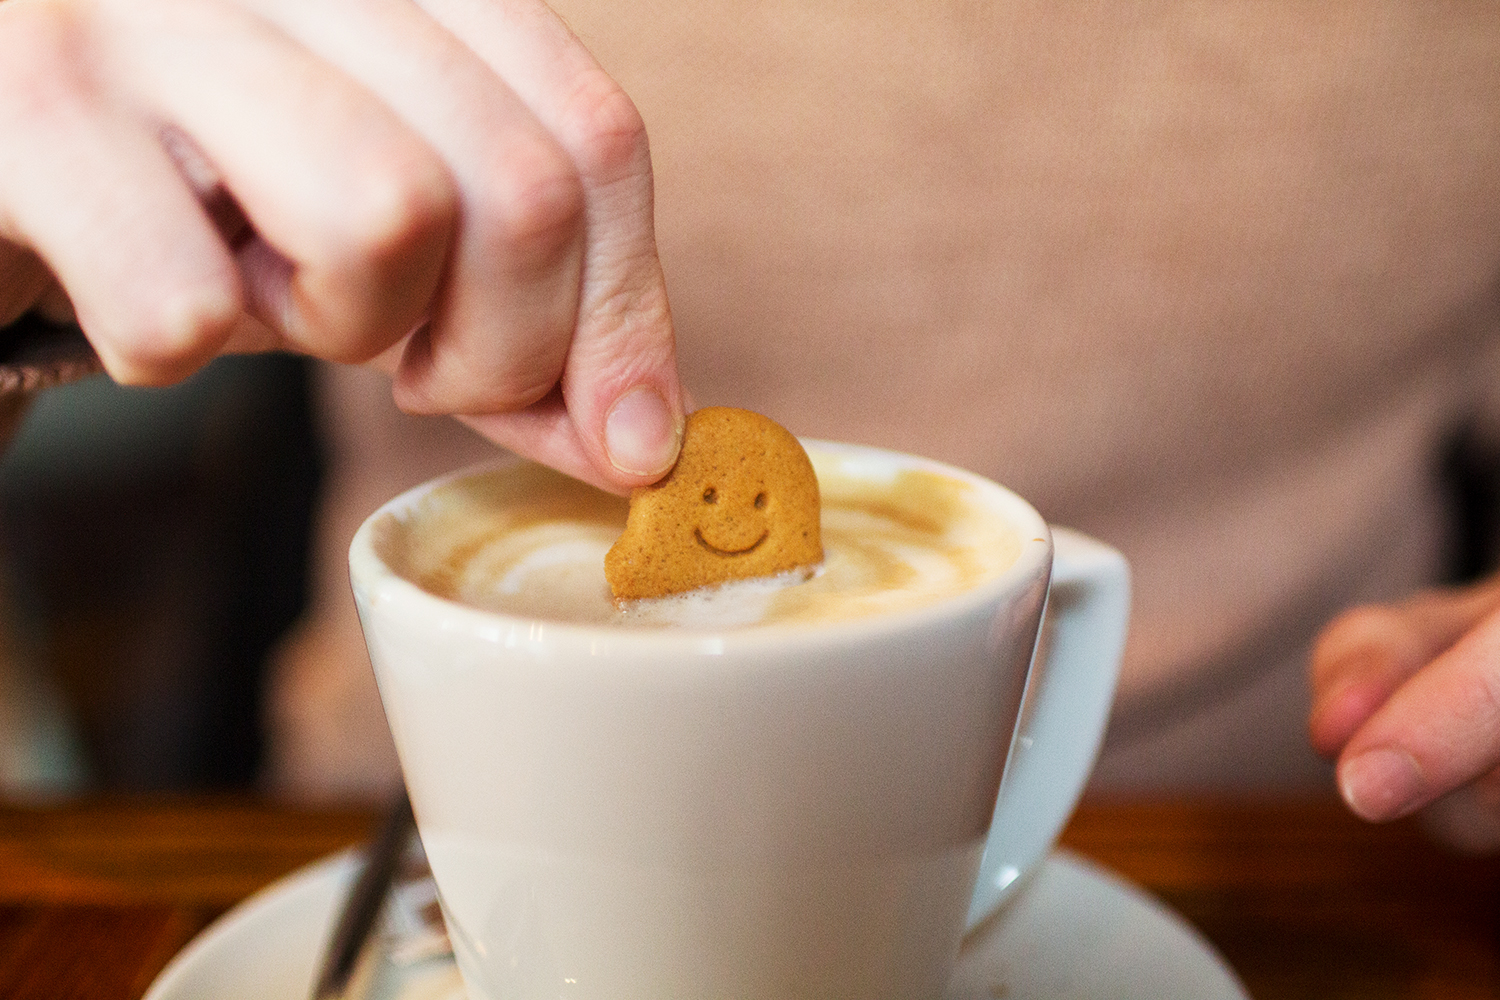 Biscuit being dunked in coffee. The Rope & Anchor, Altrincham. Photography by Alice Red.